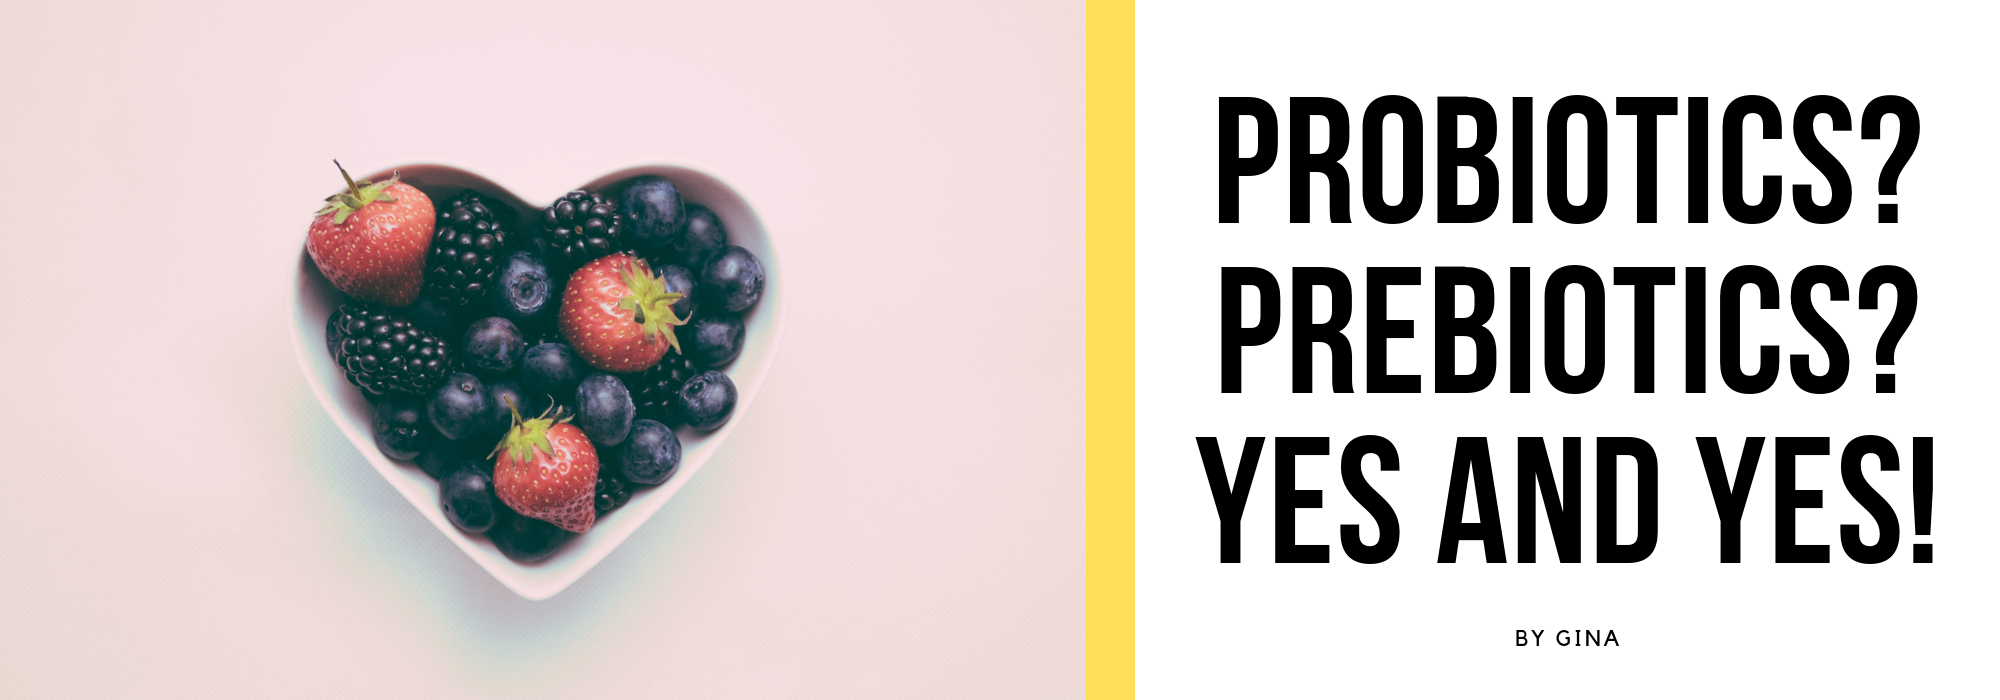 Probiotics yes, prebiotics yes, yes yes!